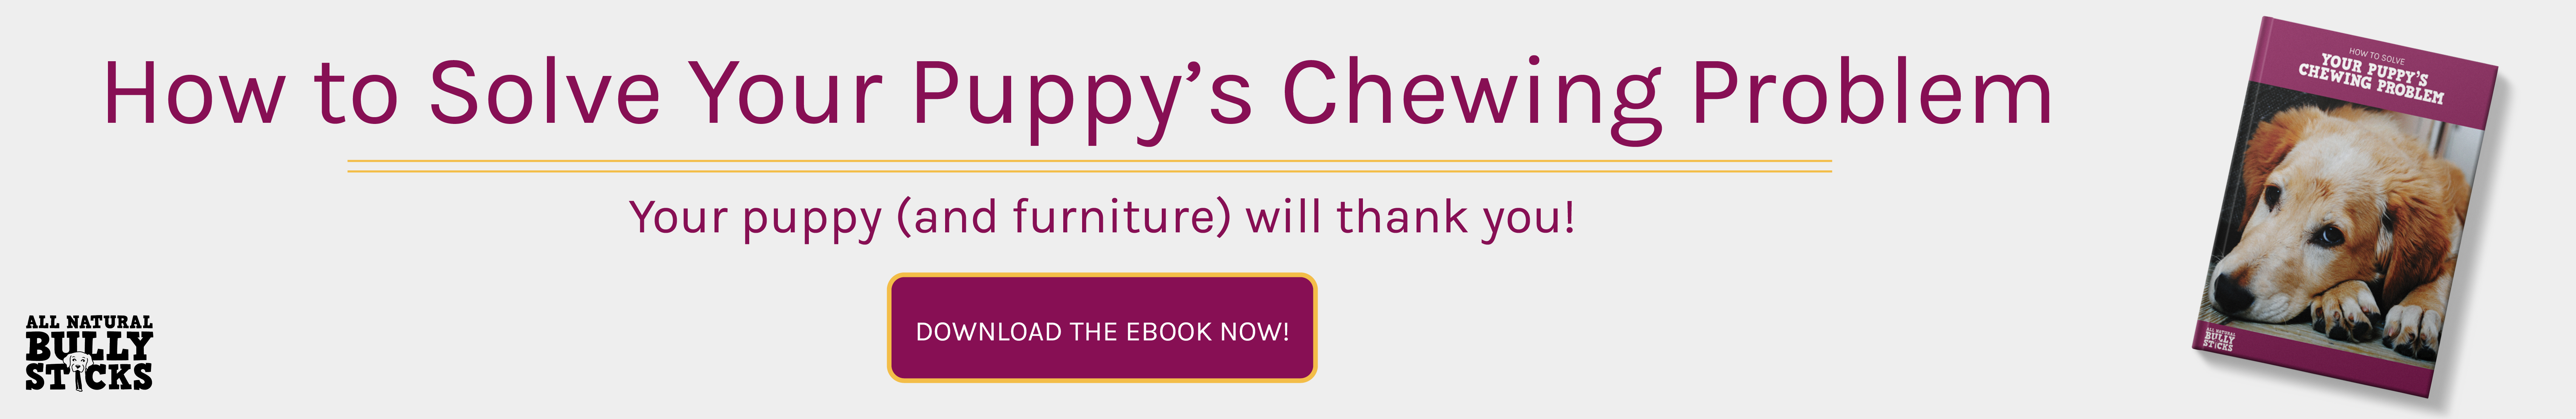 How to solve your puppy's chewing problem? Ebook